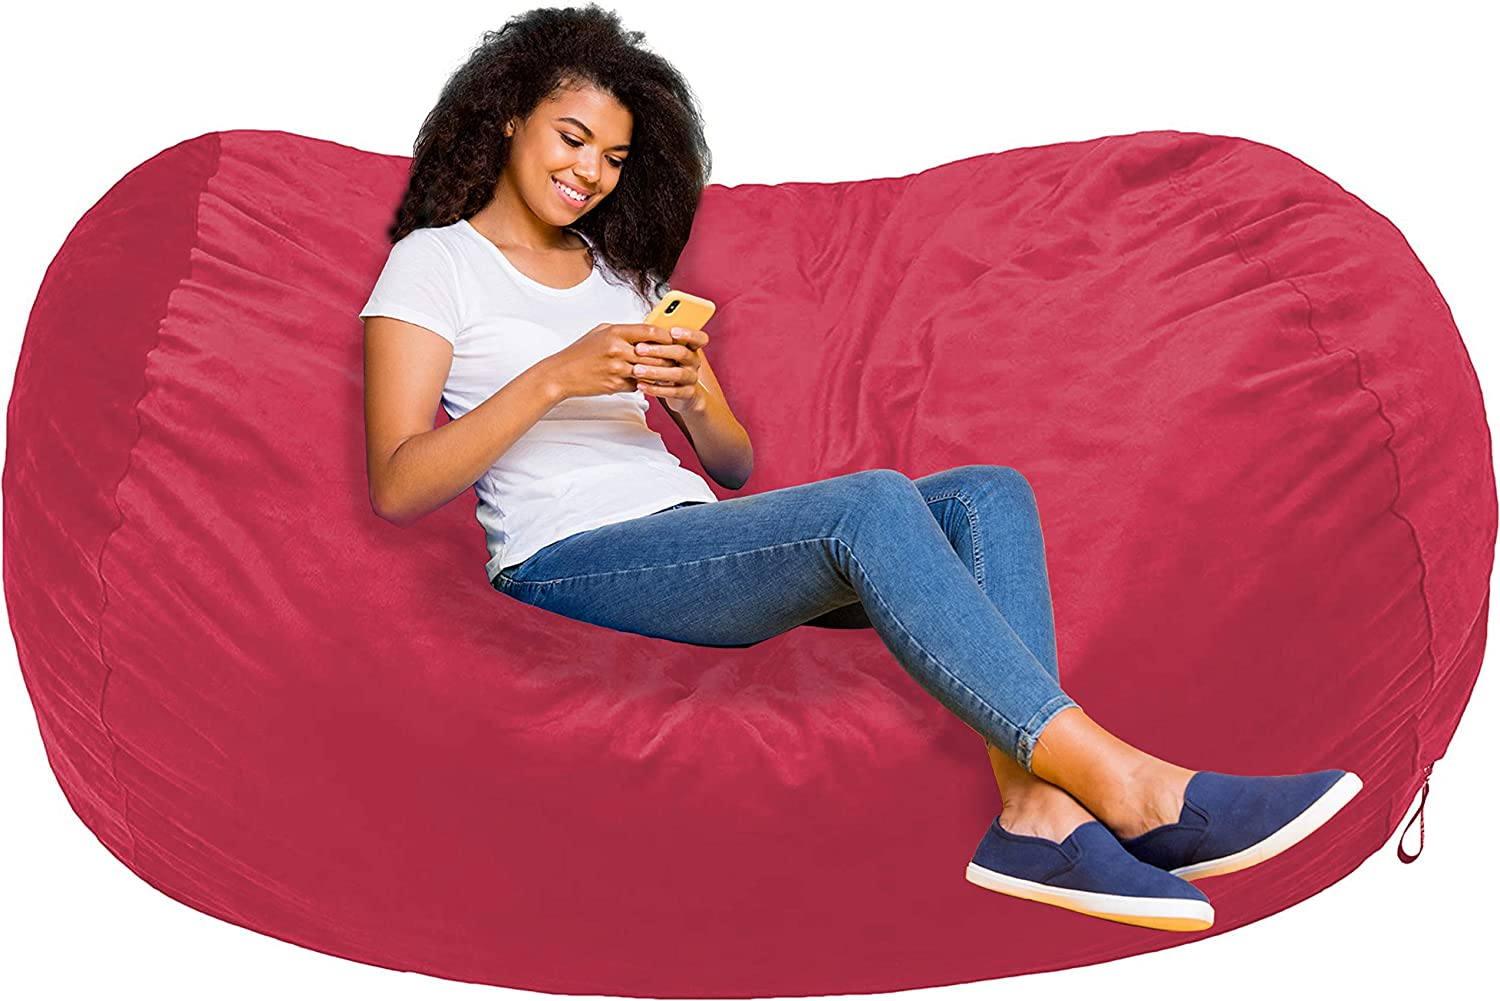 AmazonBasics Memory Foam Filled Bean Bag Lounger with Microfiber Cover - 6', Pink